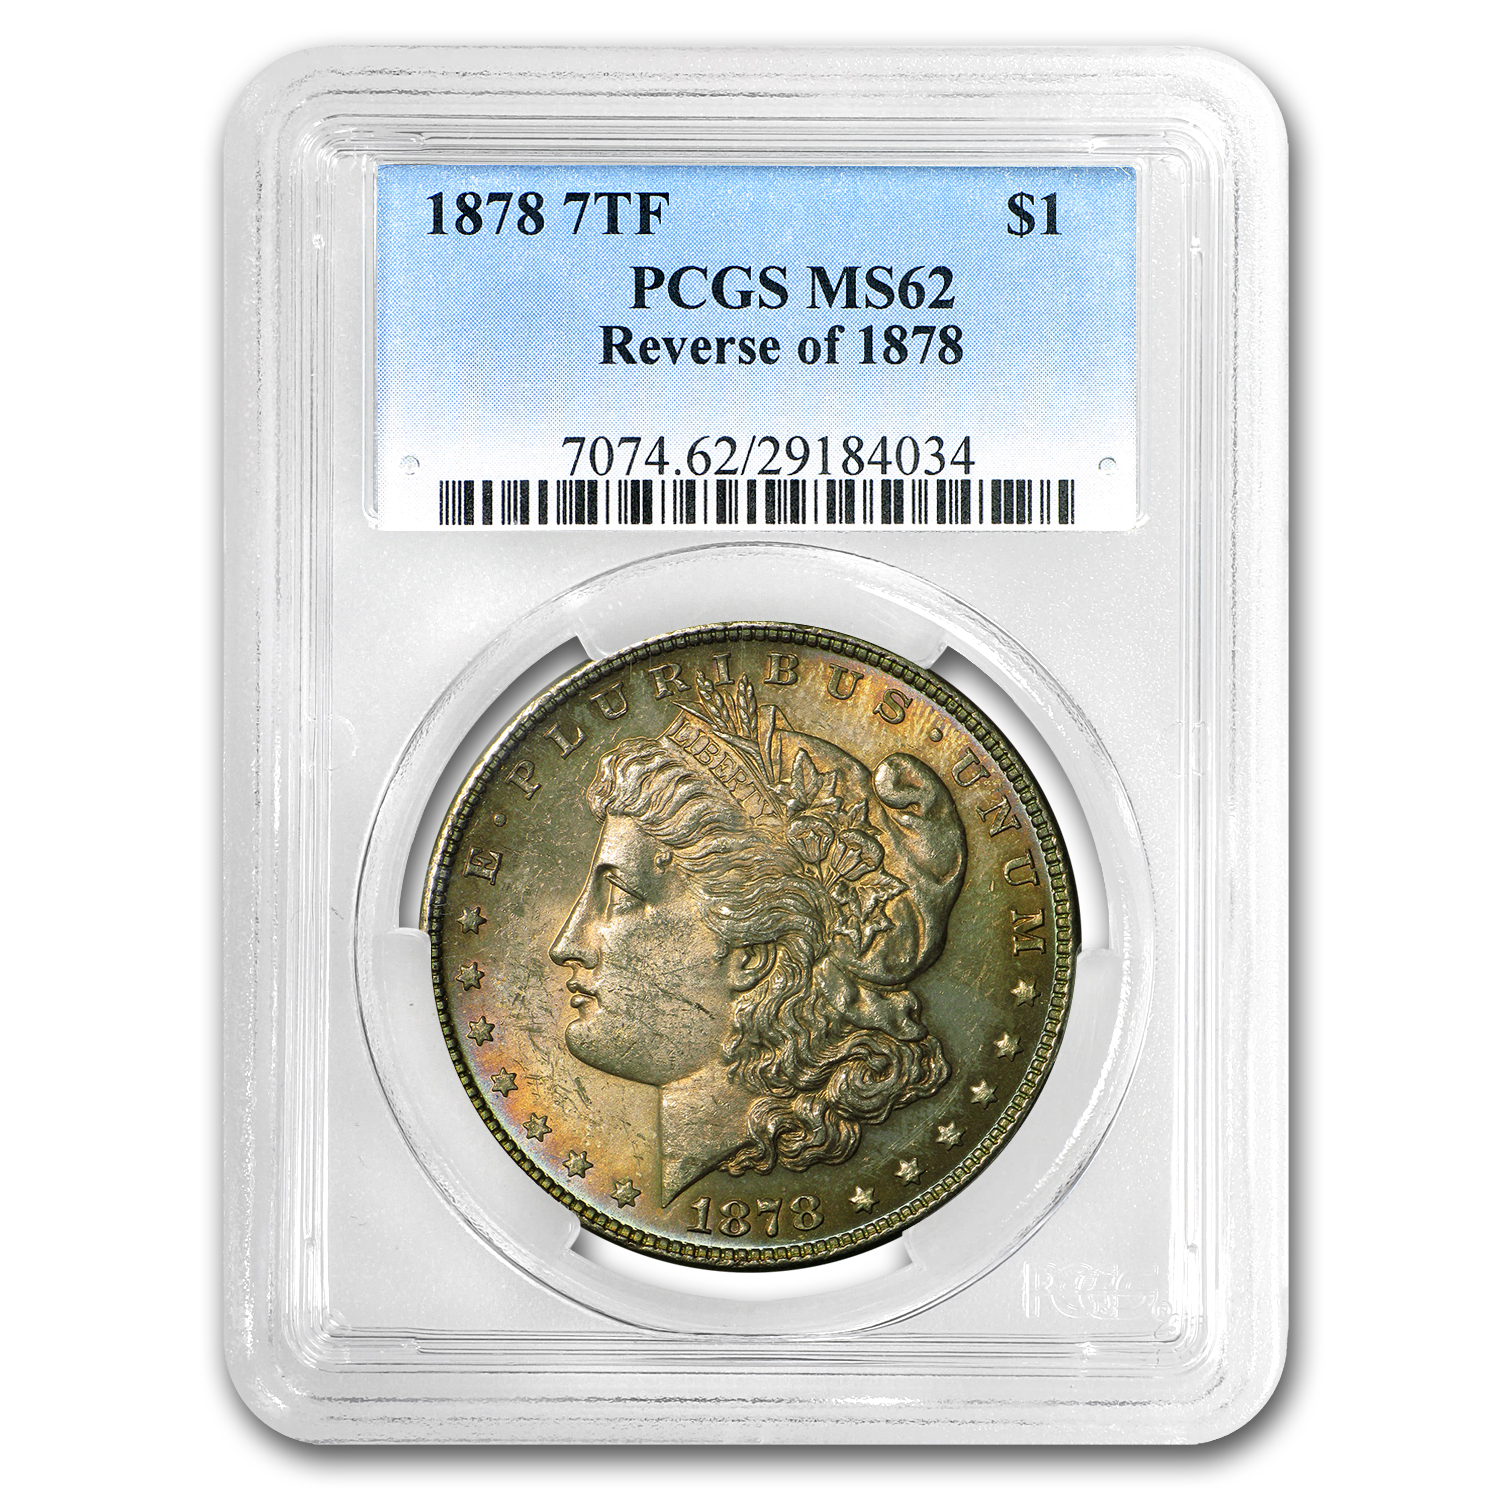 1878 Morgan Dollar 7 TF Rev of 78 MS-62 PCGS (Nice Toning)